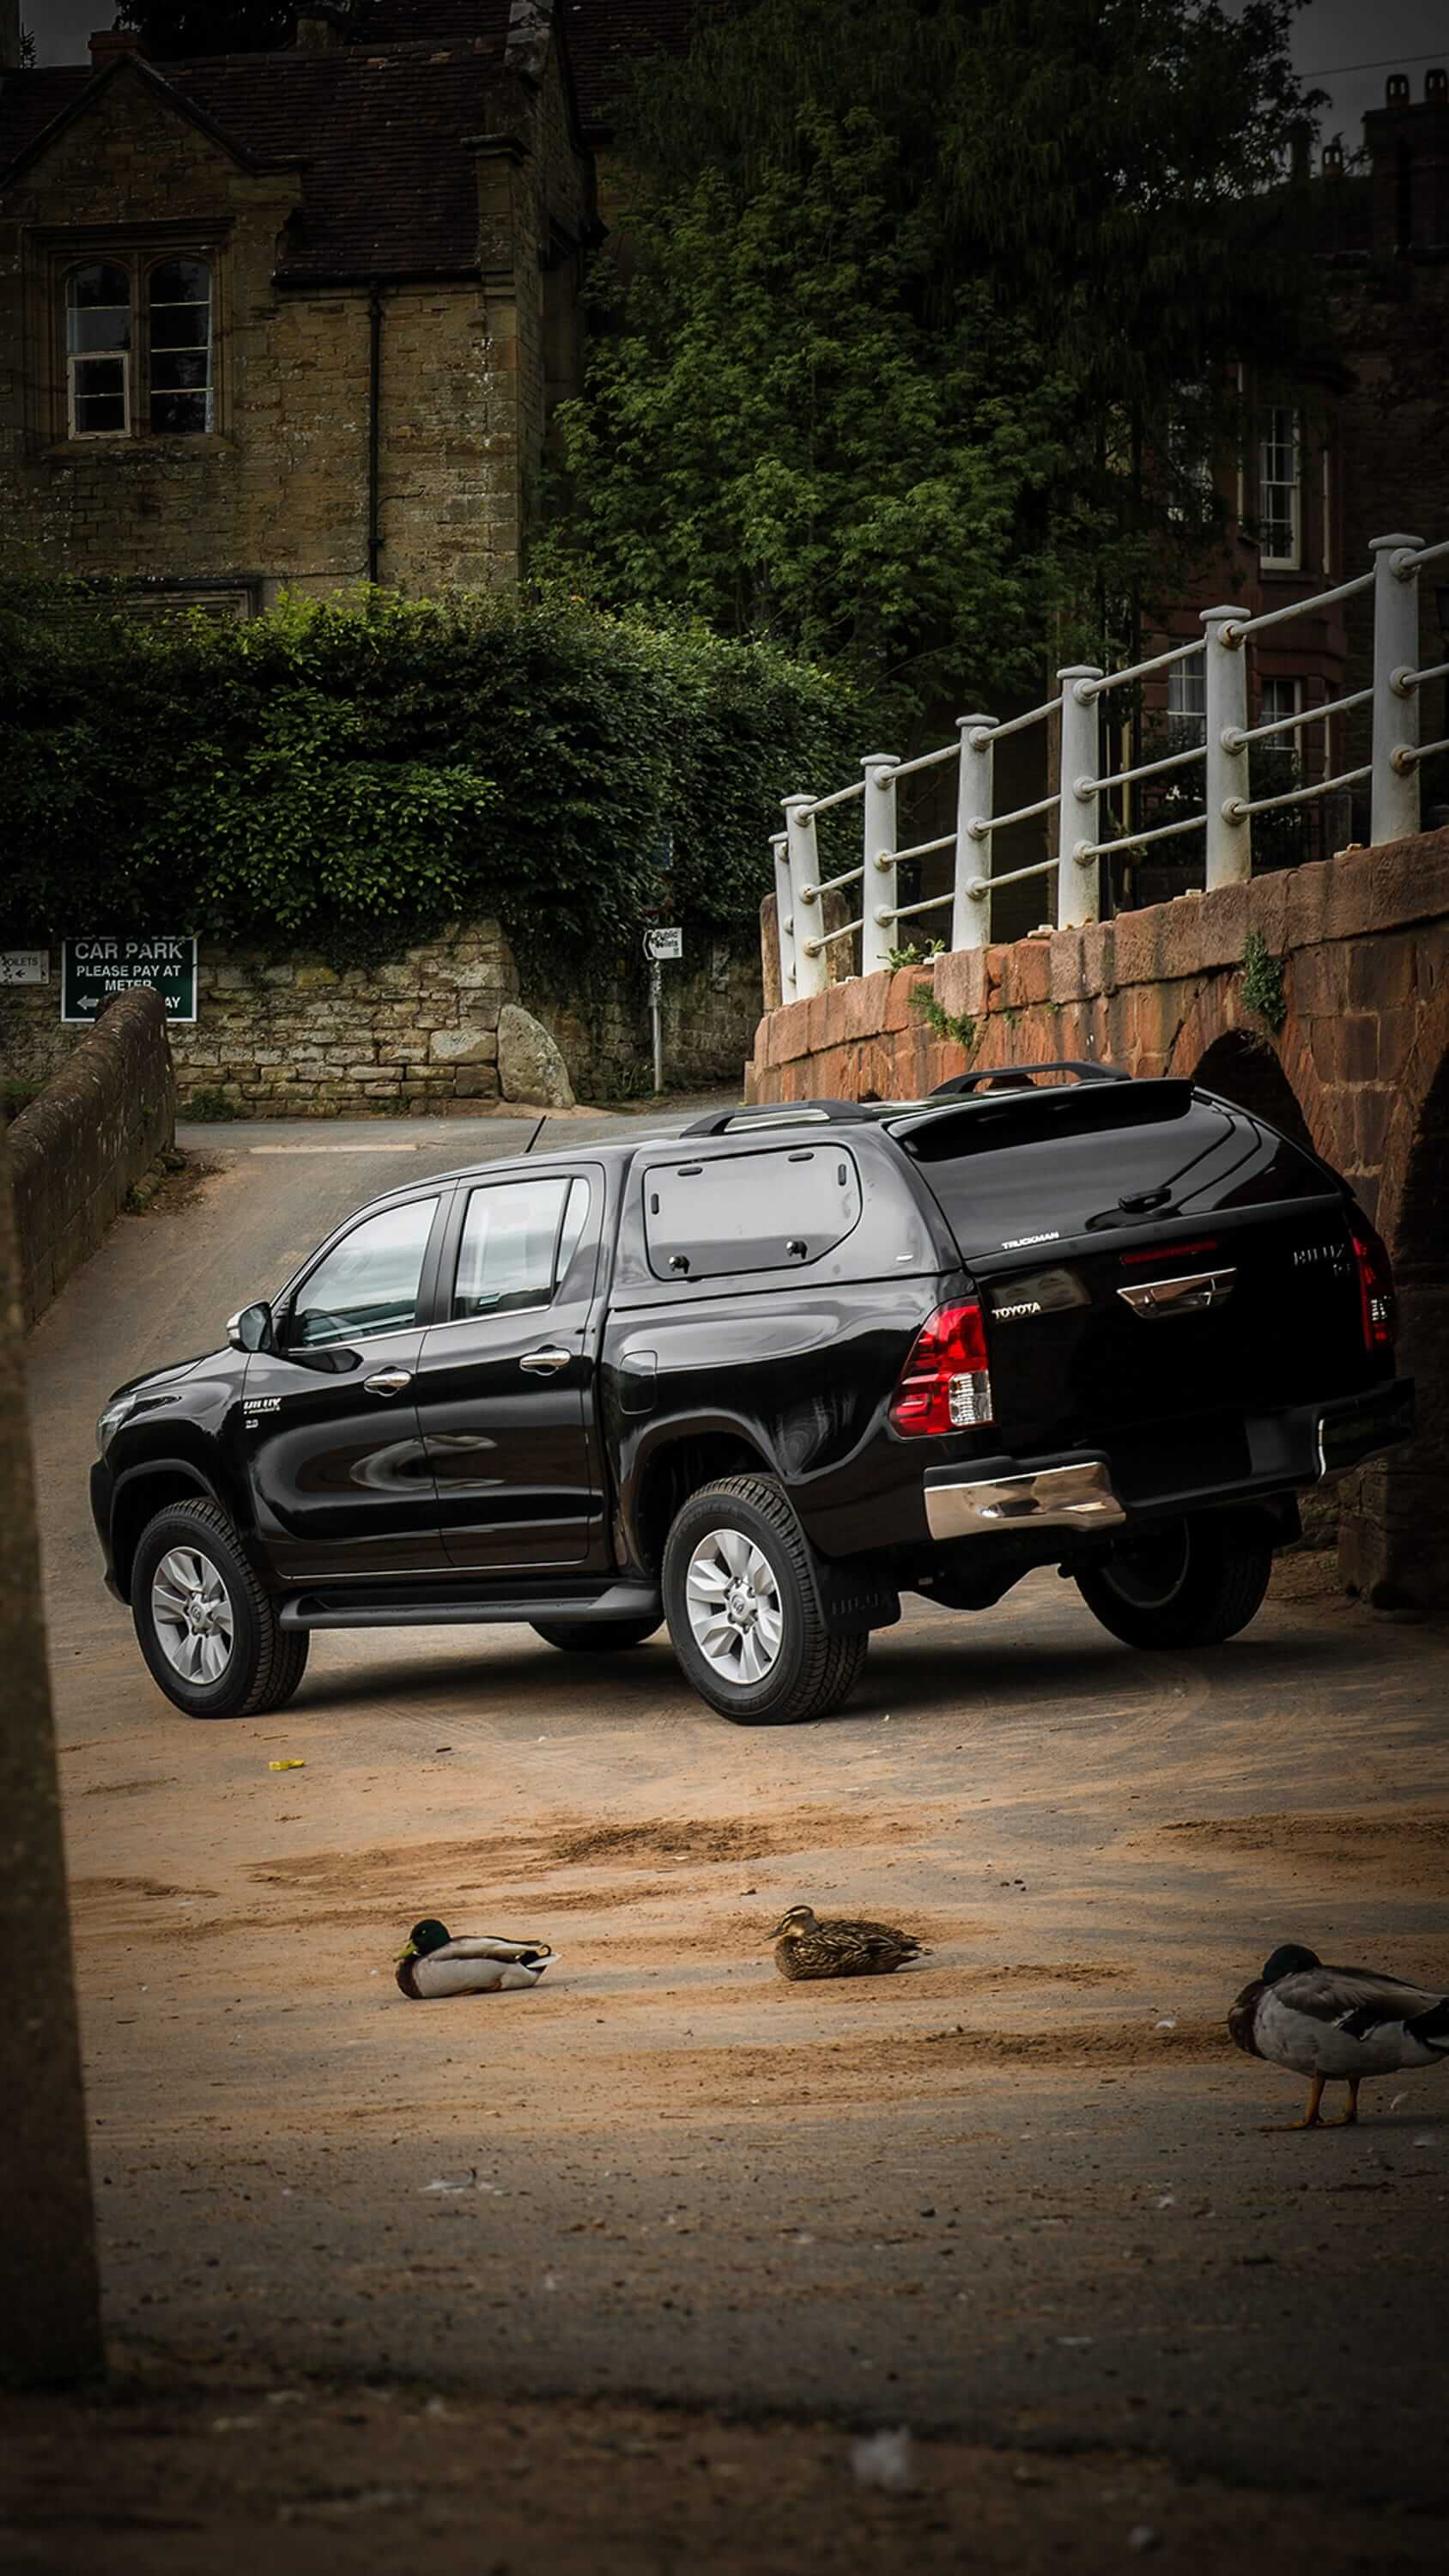 Toyota Hilux Double Cab Fitted With a Truckman S-Series Hardtop Canopy (Portrait)